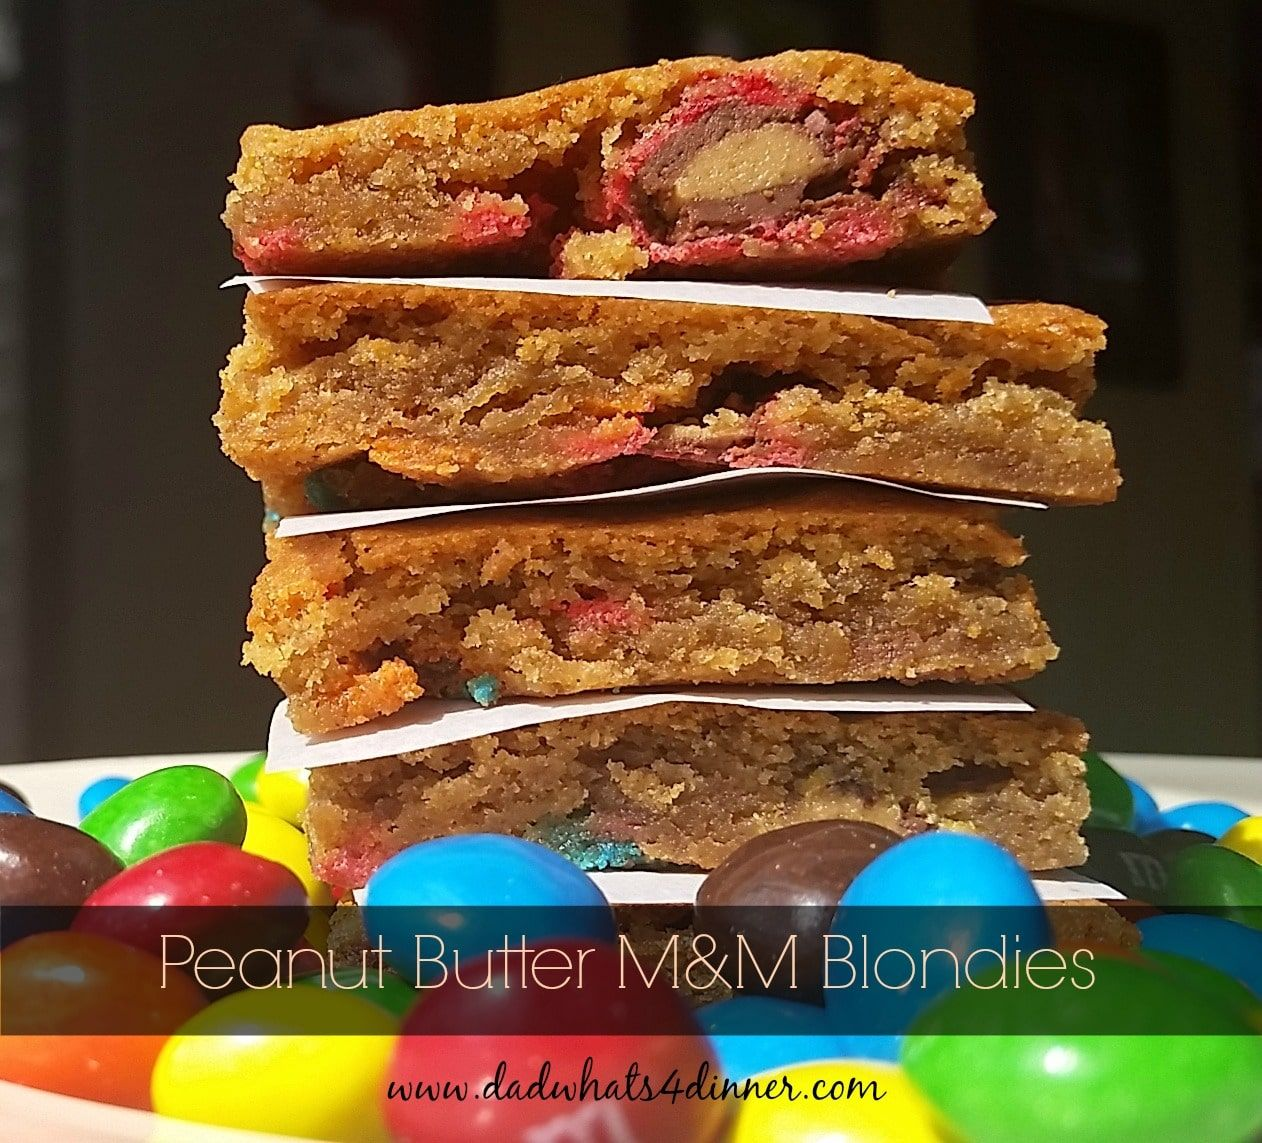 Peanut Butter M and M Blondies take the wonderful little candy to a whole new level. Quick, easy and fun to eat. | www.dadwhats4dinner.com via @dadwhats4dinner